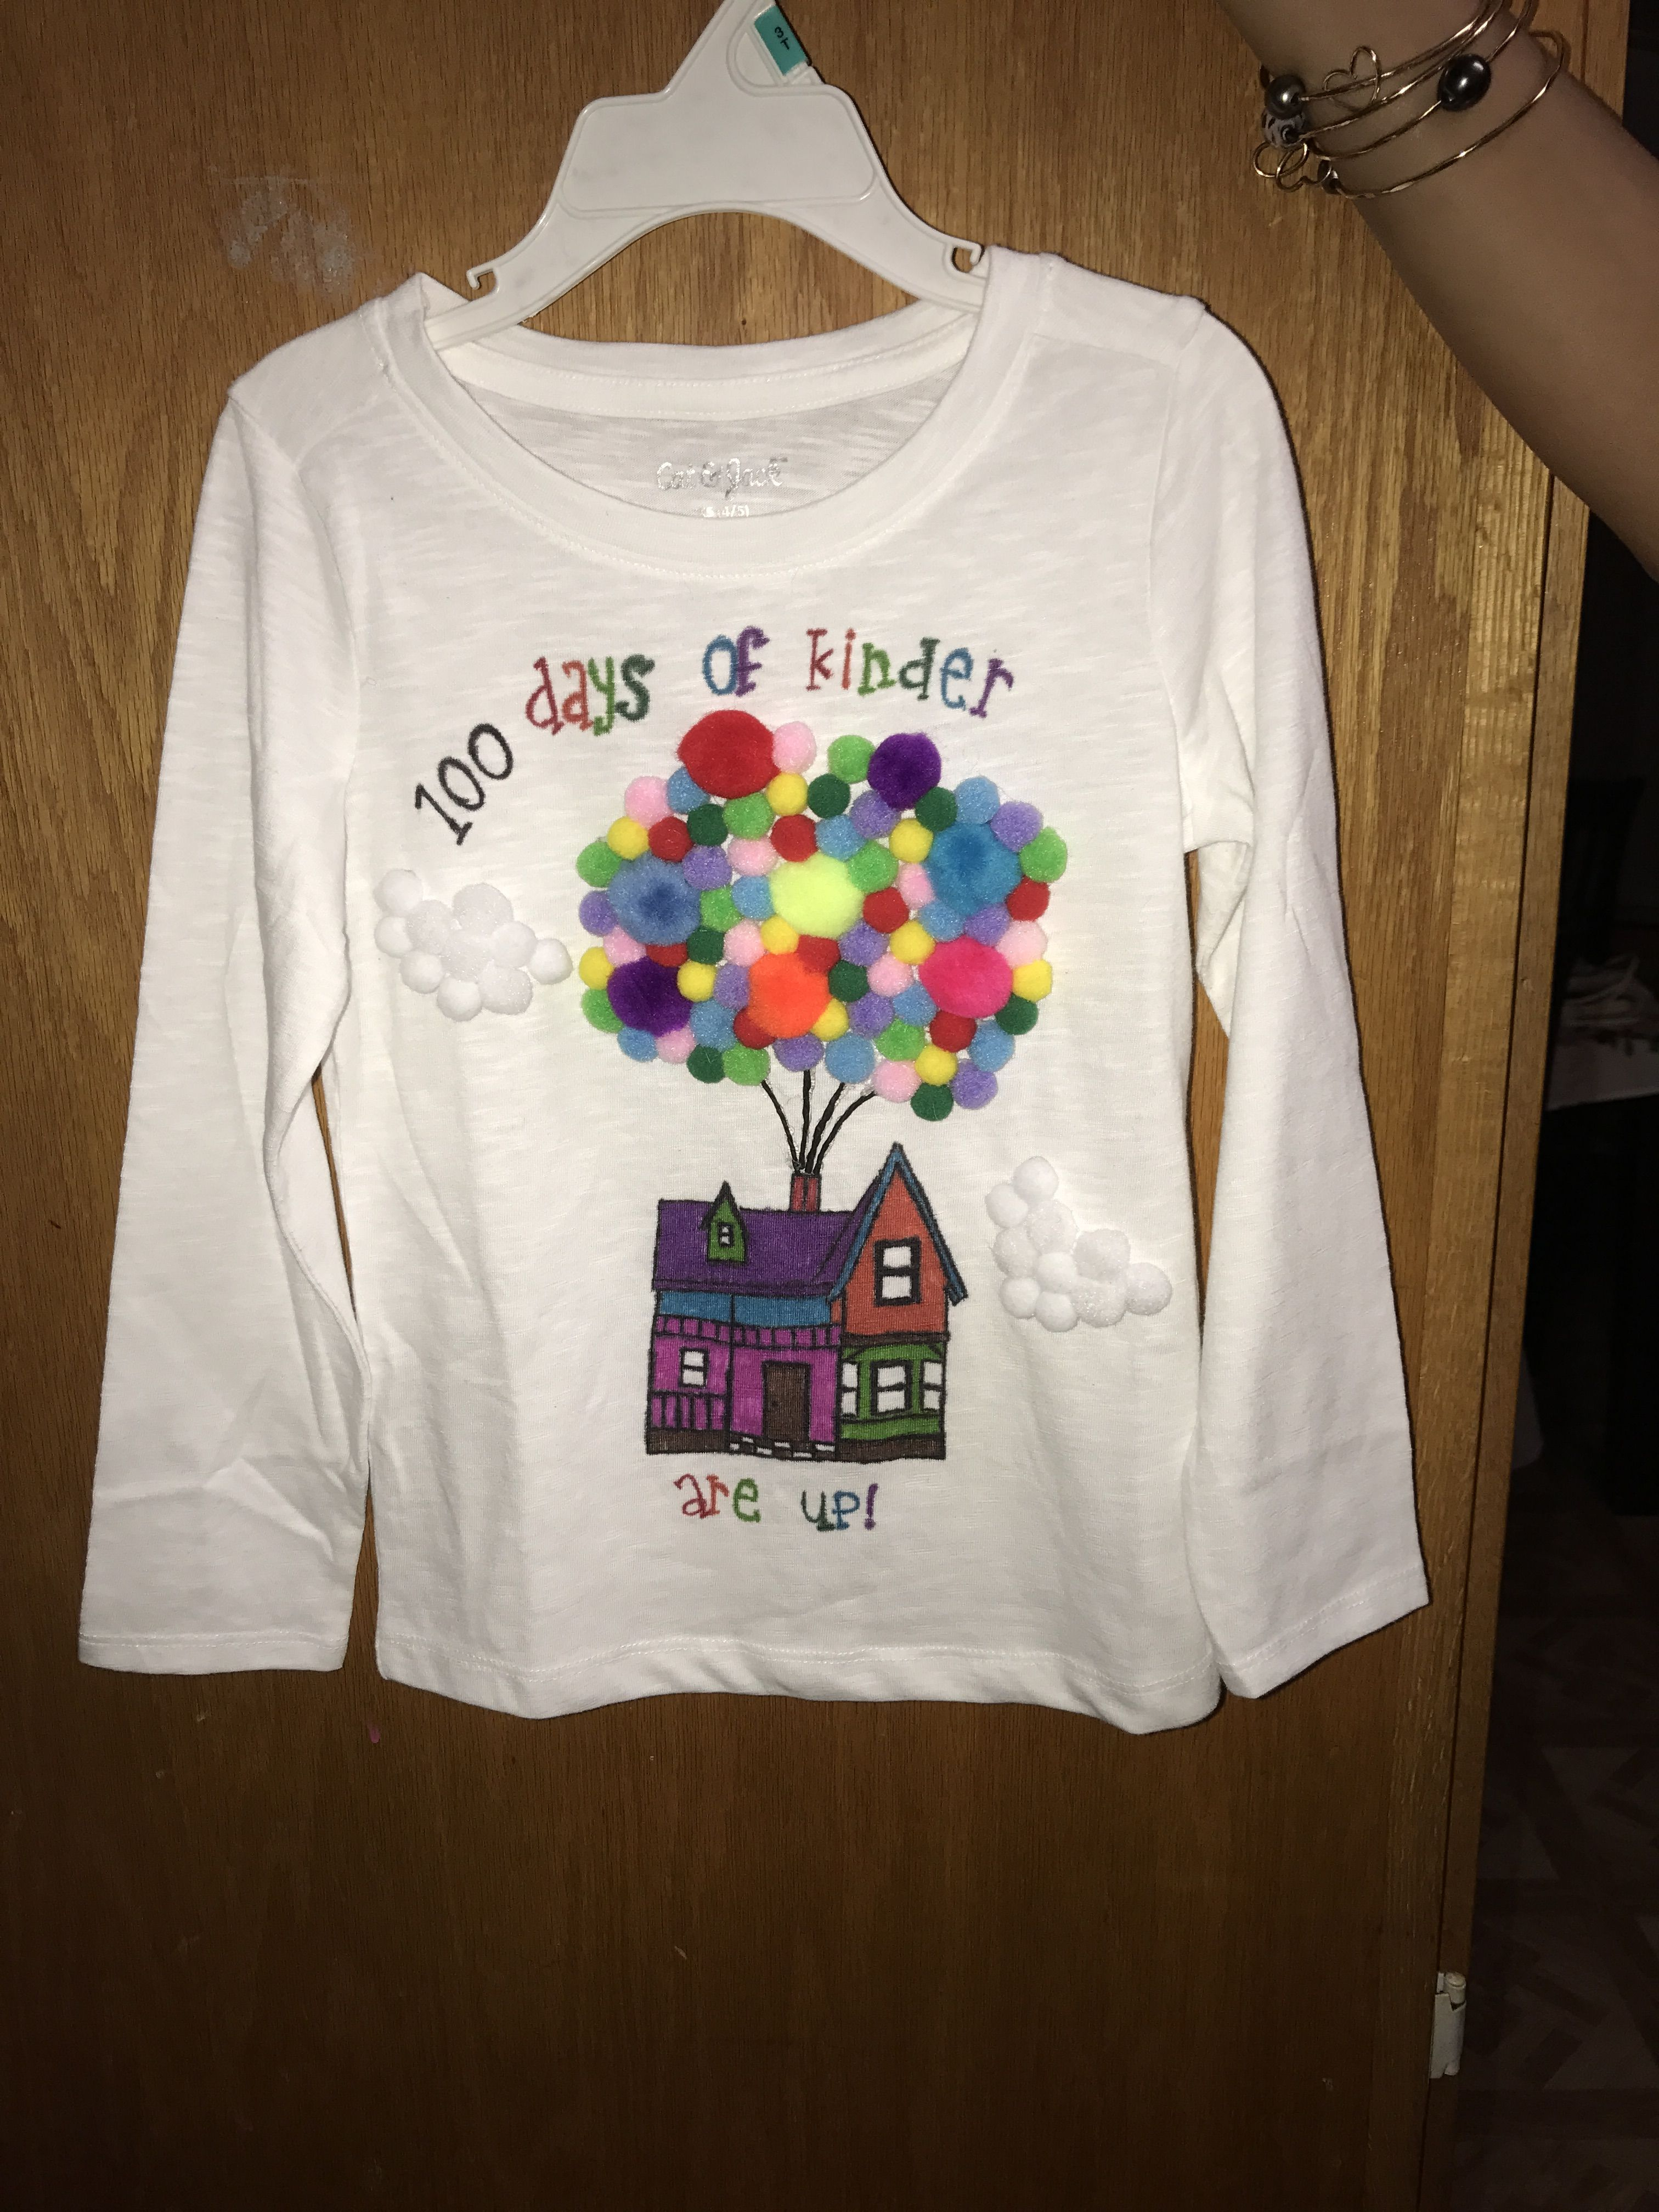 100th Day Of Kindergarten School Shirt Inspiration From The Movie